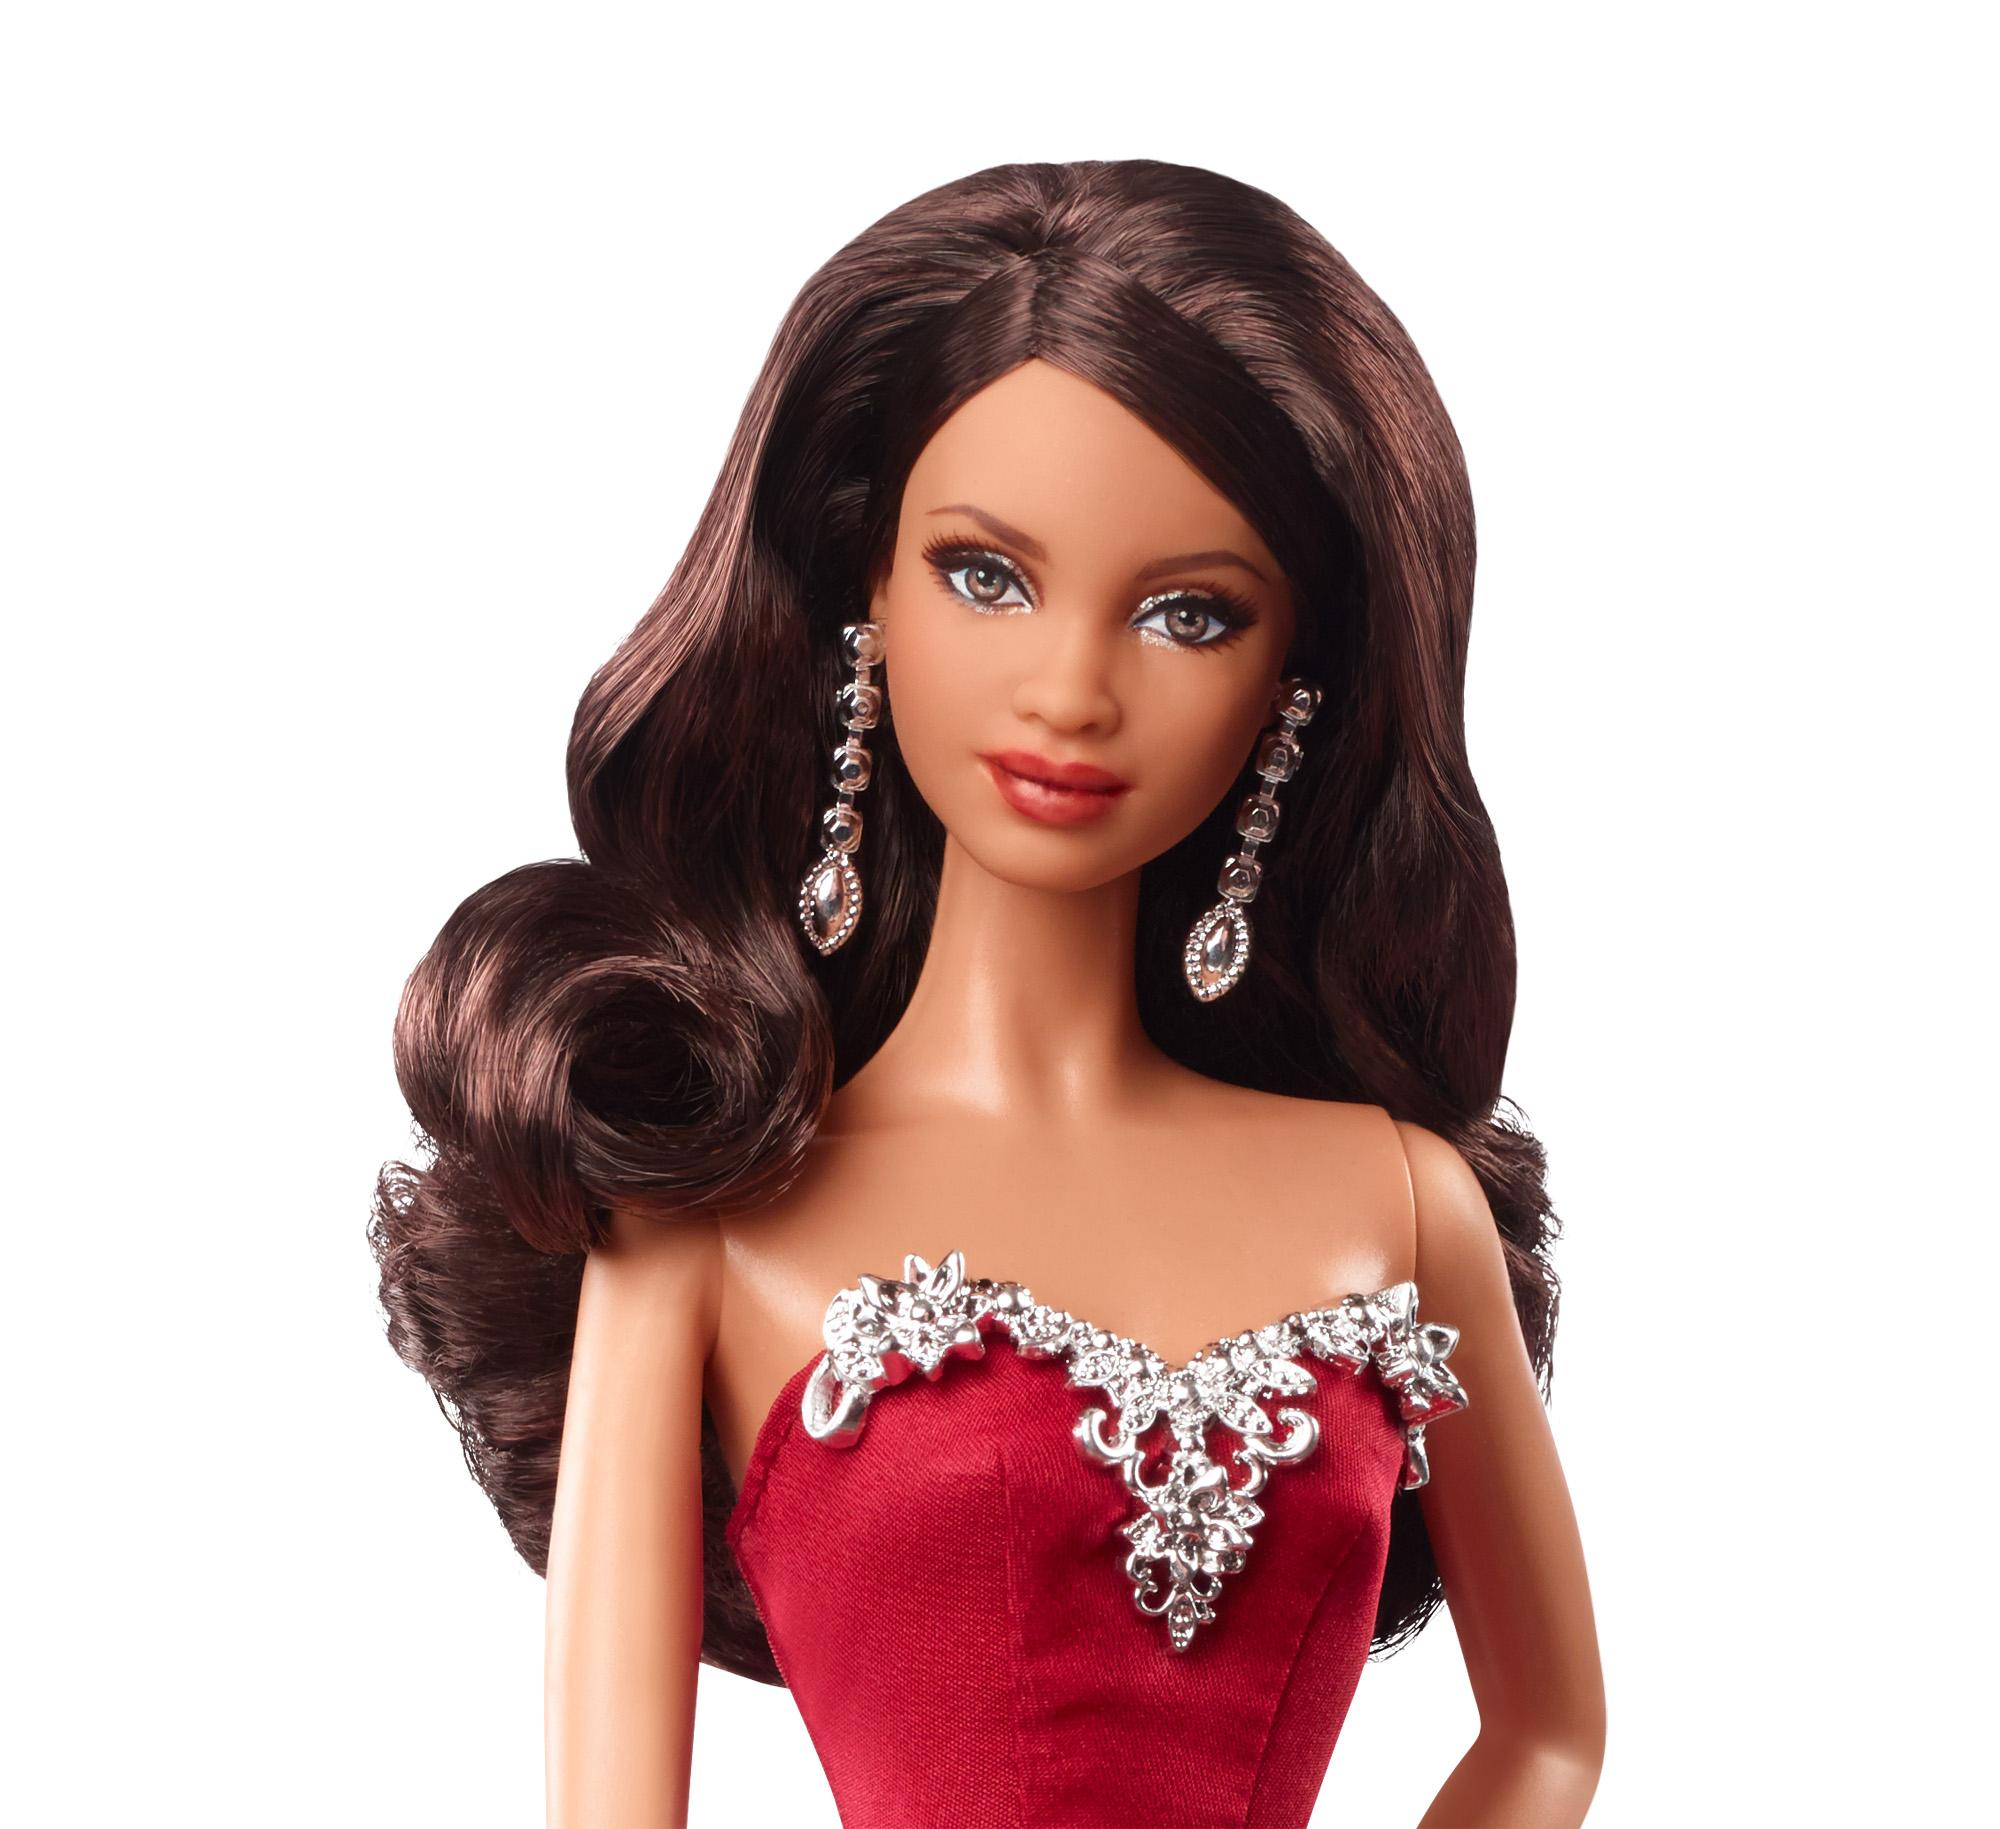 The american barbie doll